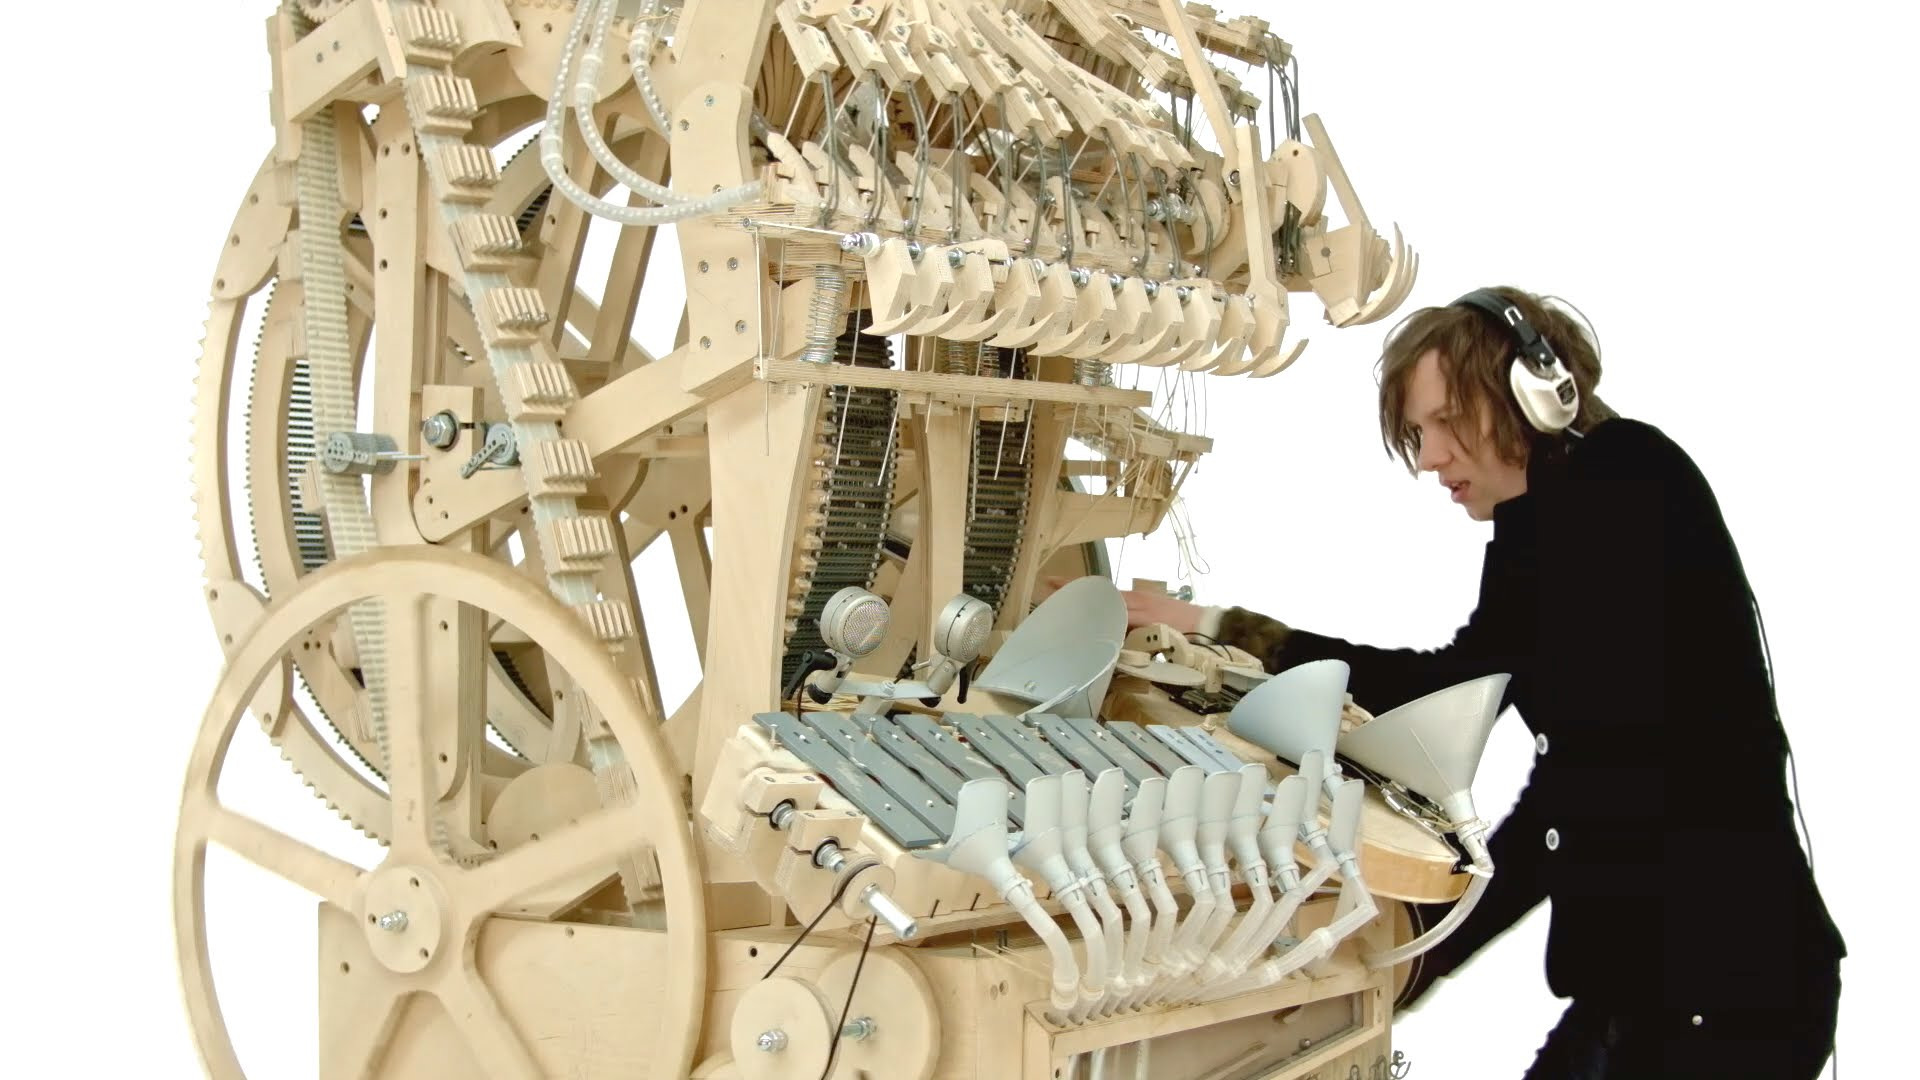 You've Never Seen an Instrument Like This